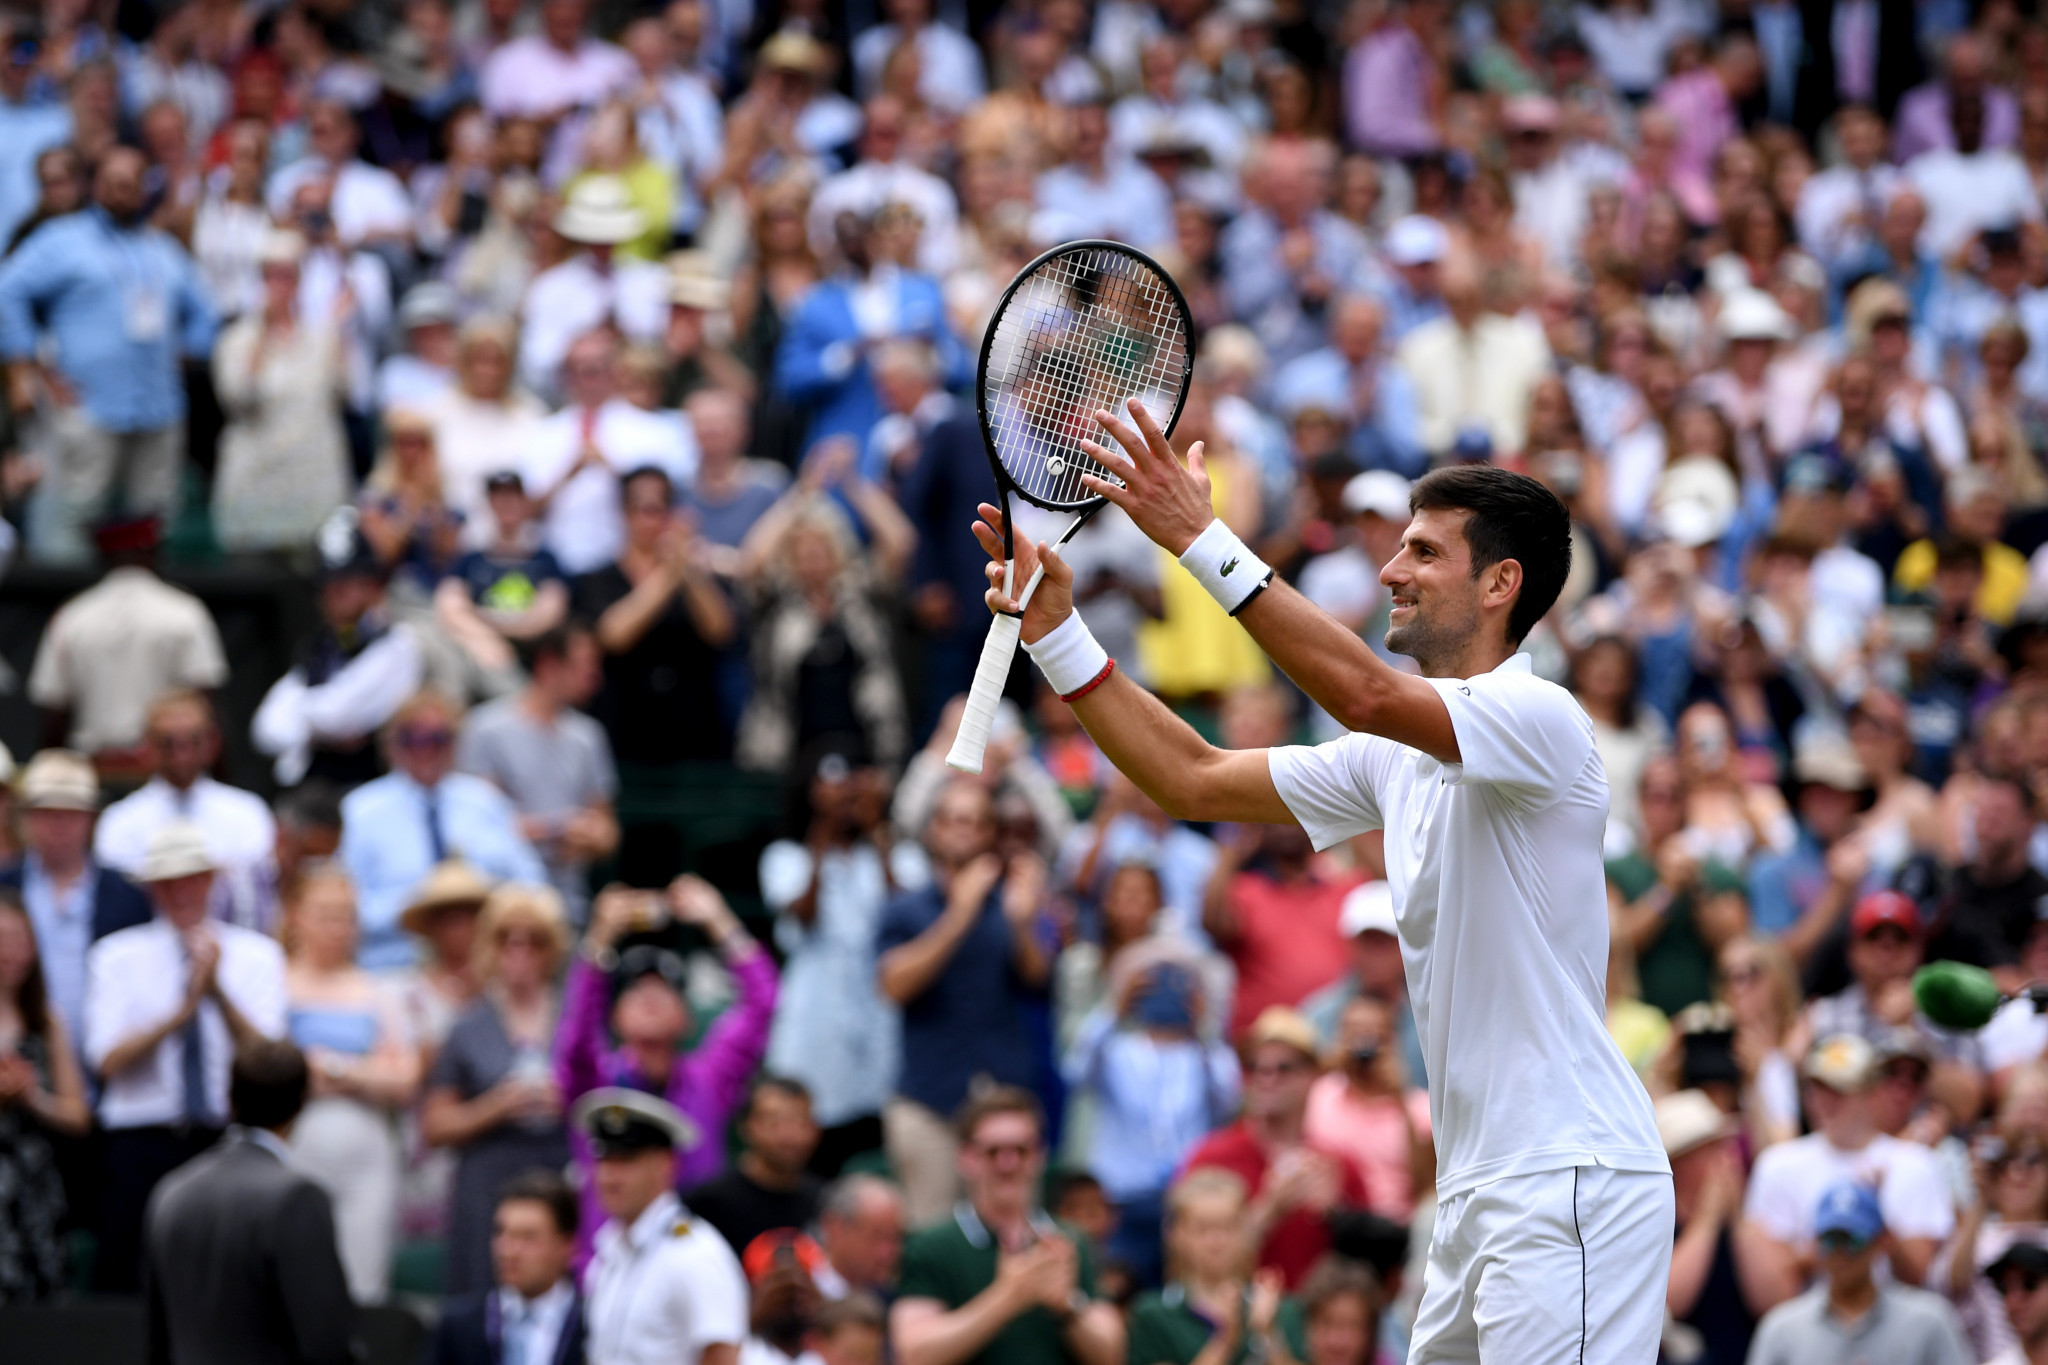 Djokovic through to semi-finals at Wimbledon as Nadal and Federer set up mouthwatering last-four clash